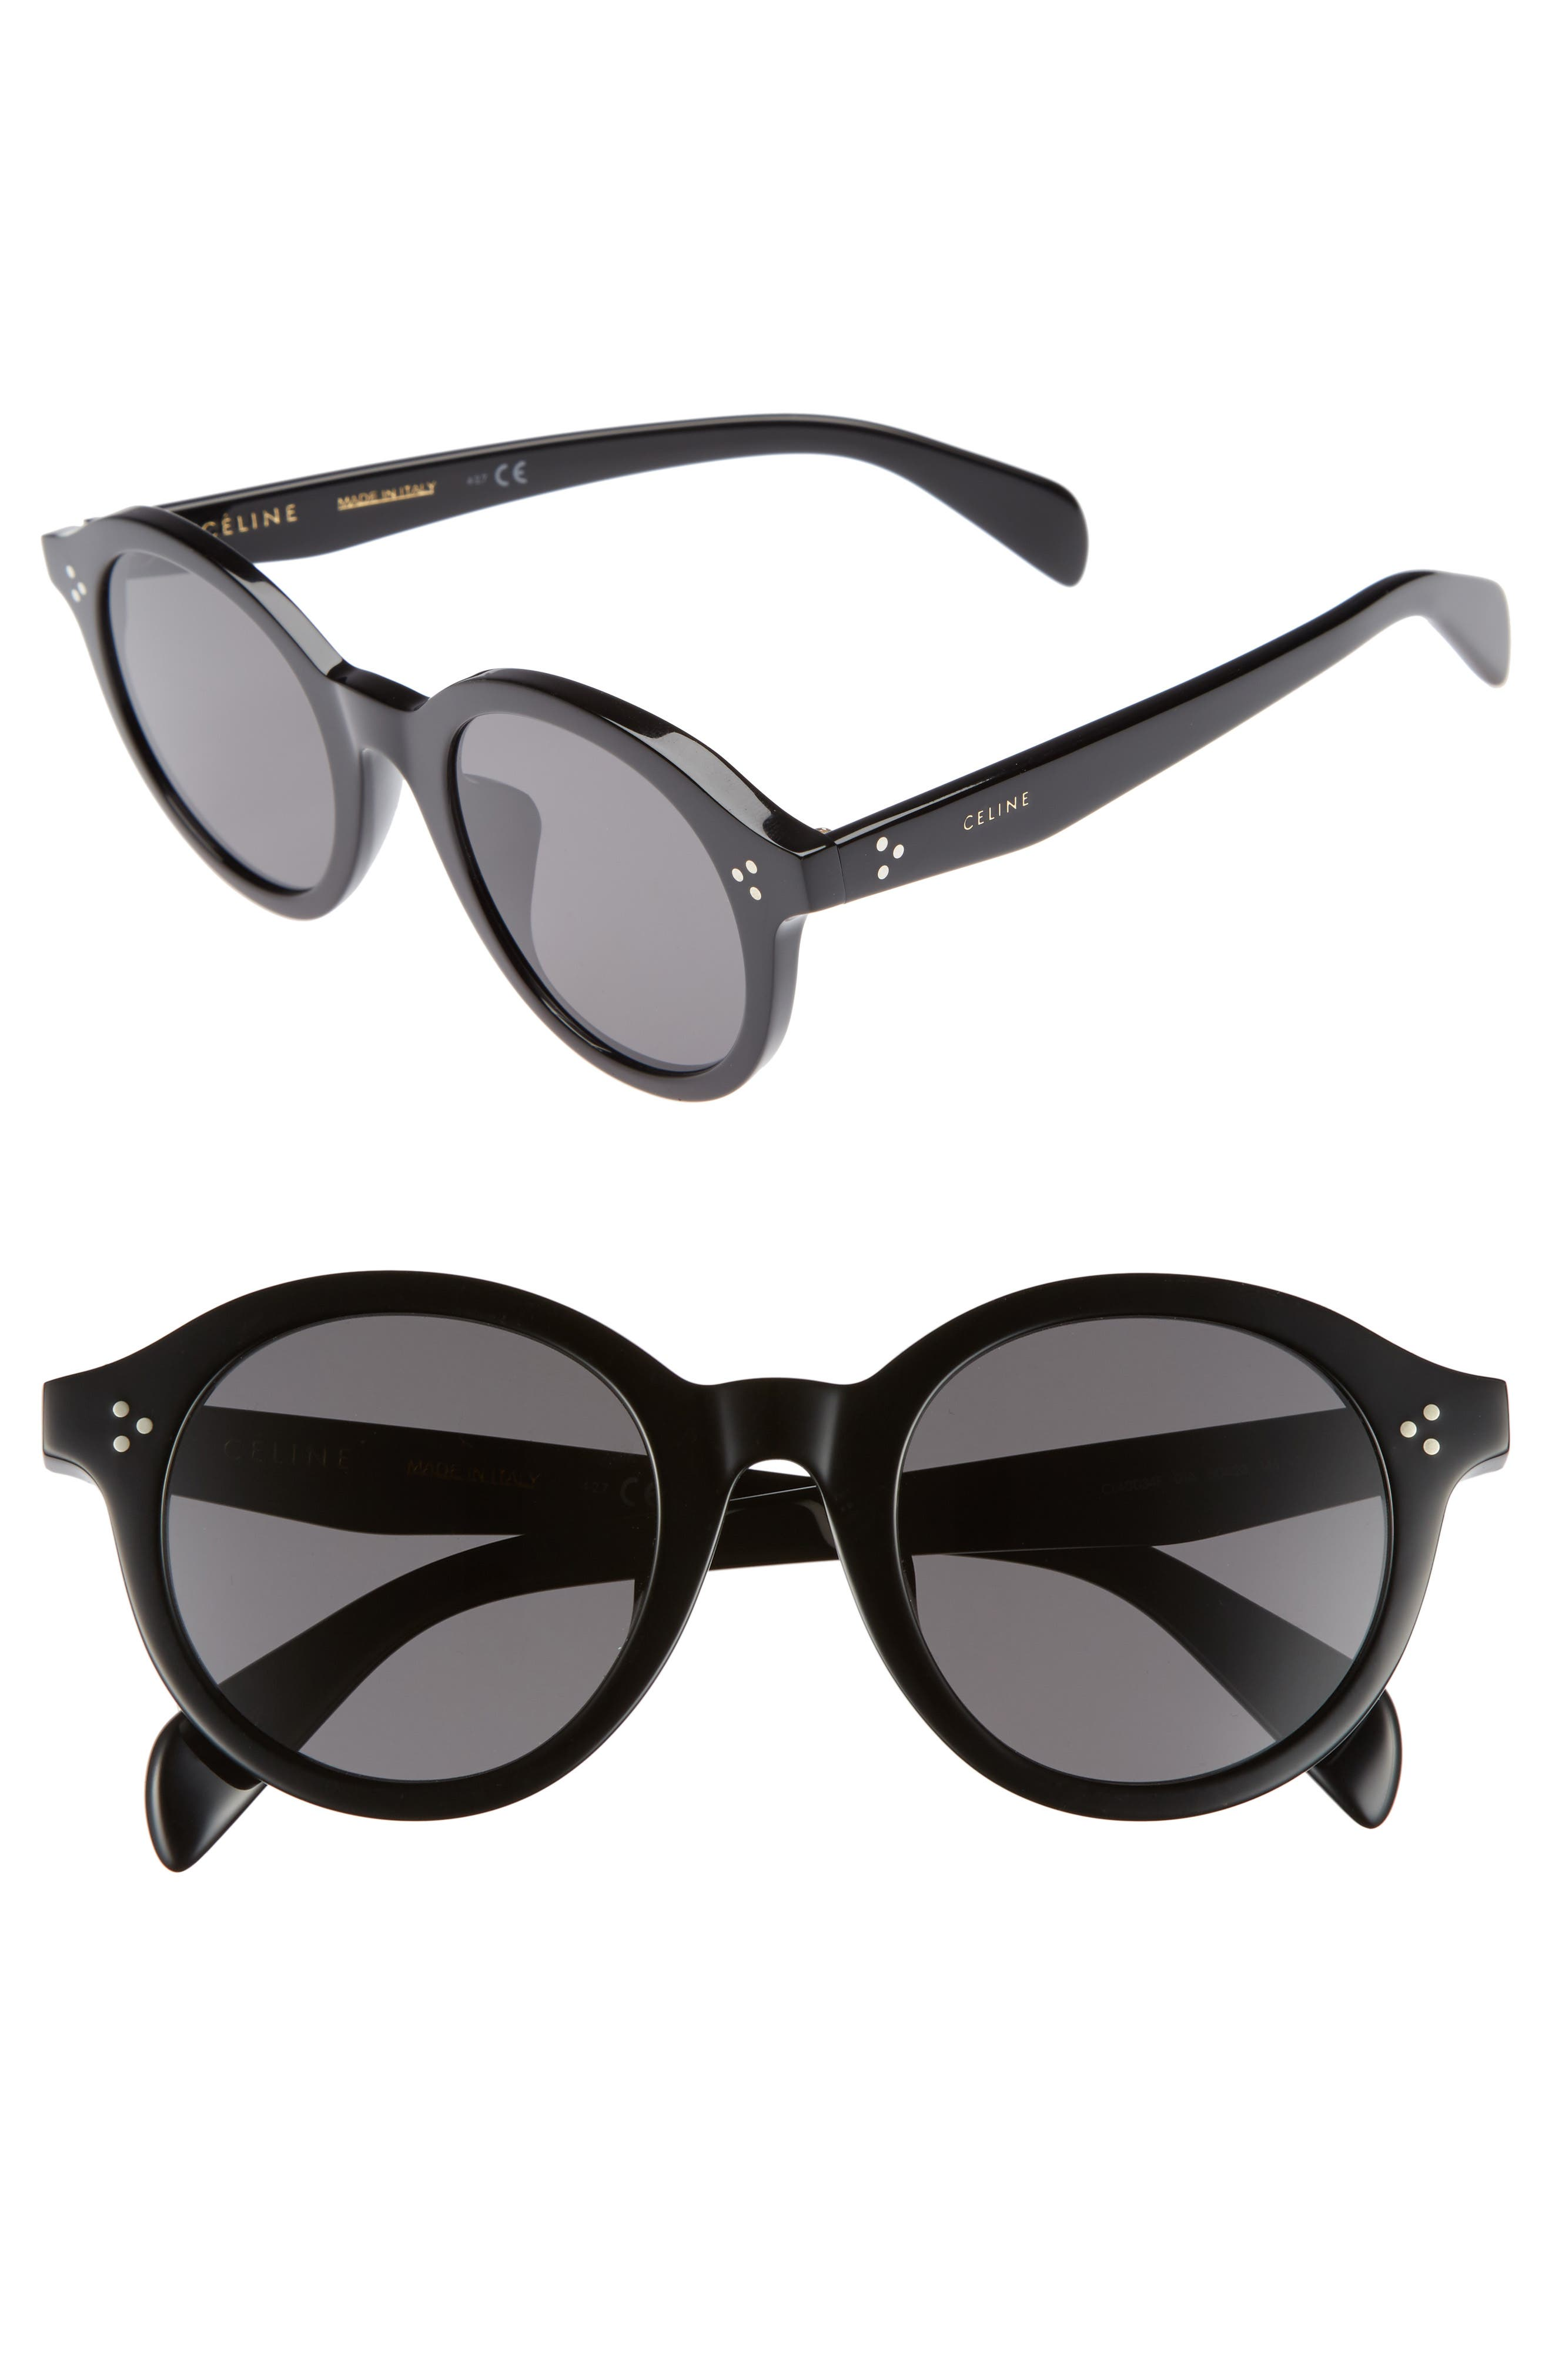 Special Fit 50mm Round Sunglasses,                             Main thumbnail 1, color,                             Black/ Smoke